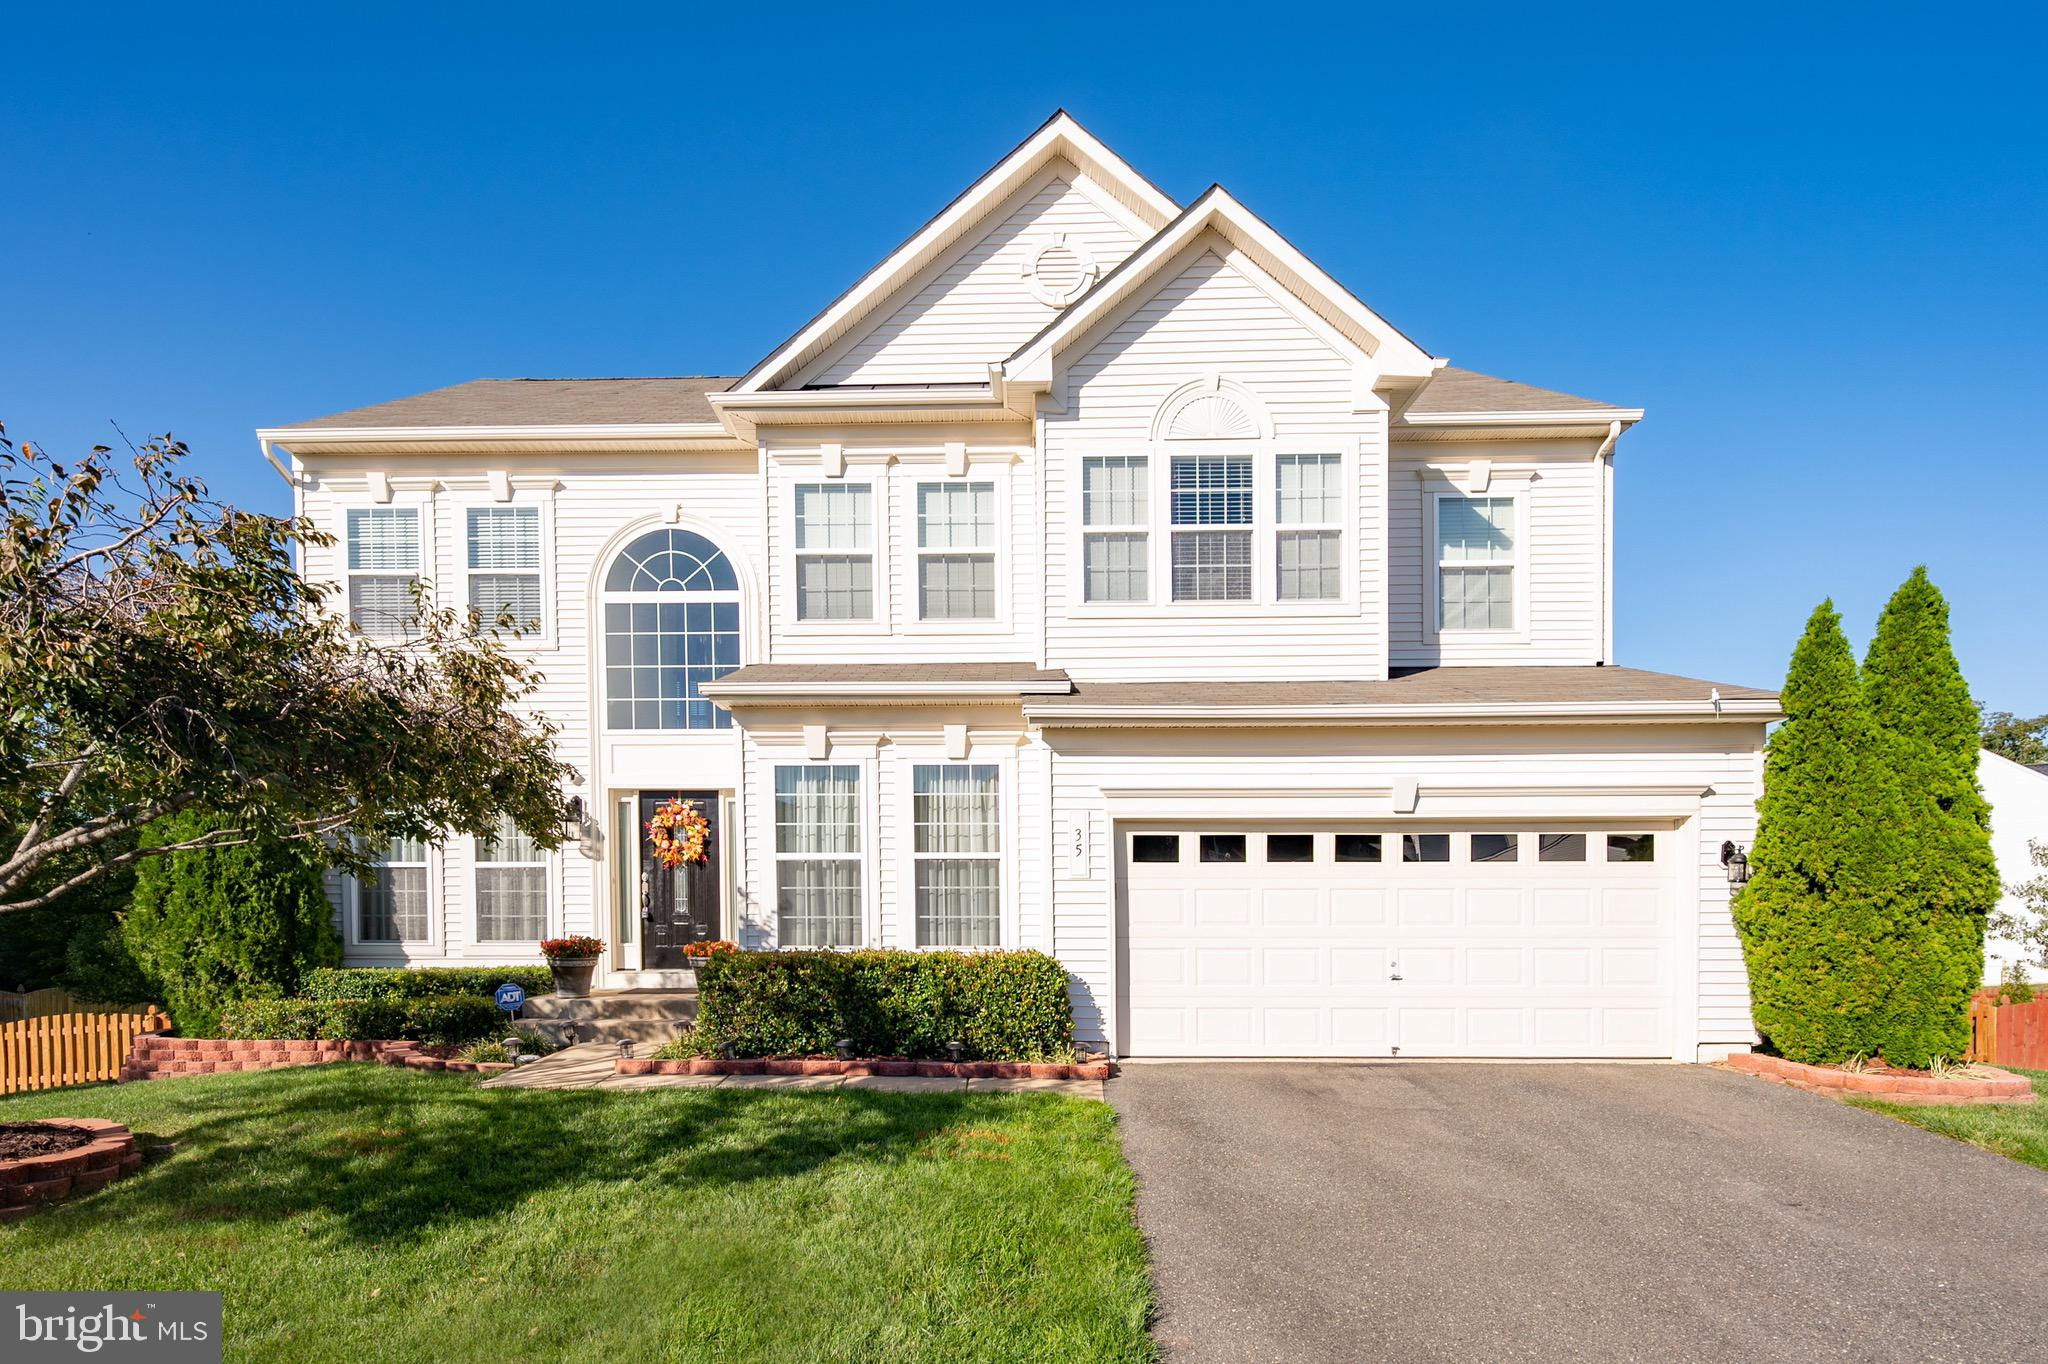 Welcome to your magnificent new home, located in the peaceful and highly sought-after community of A